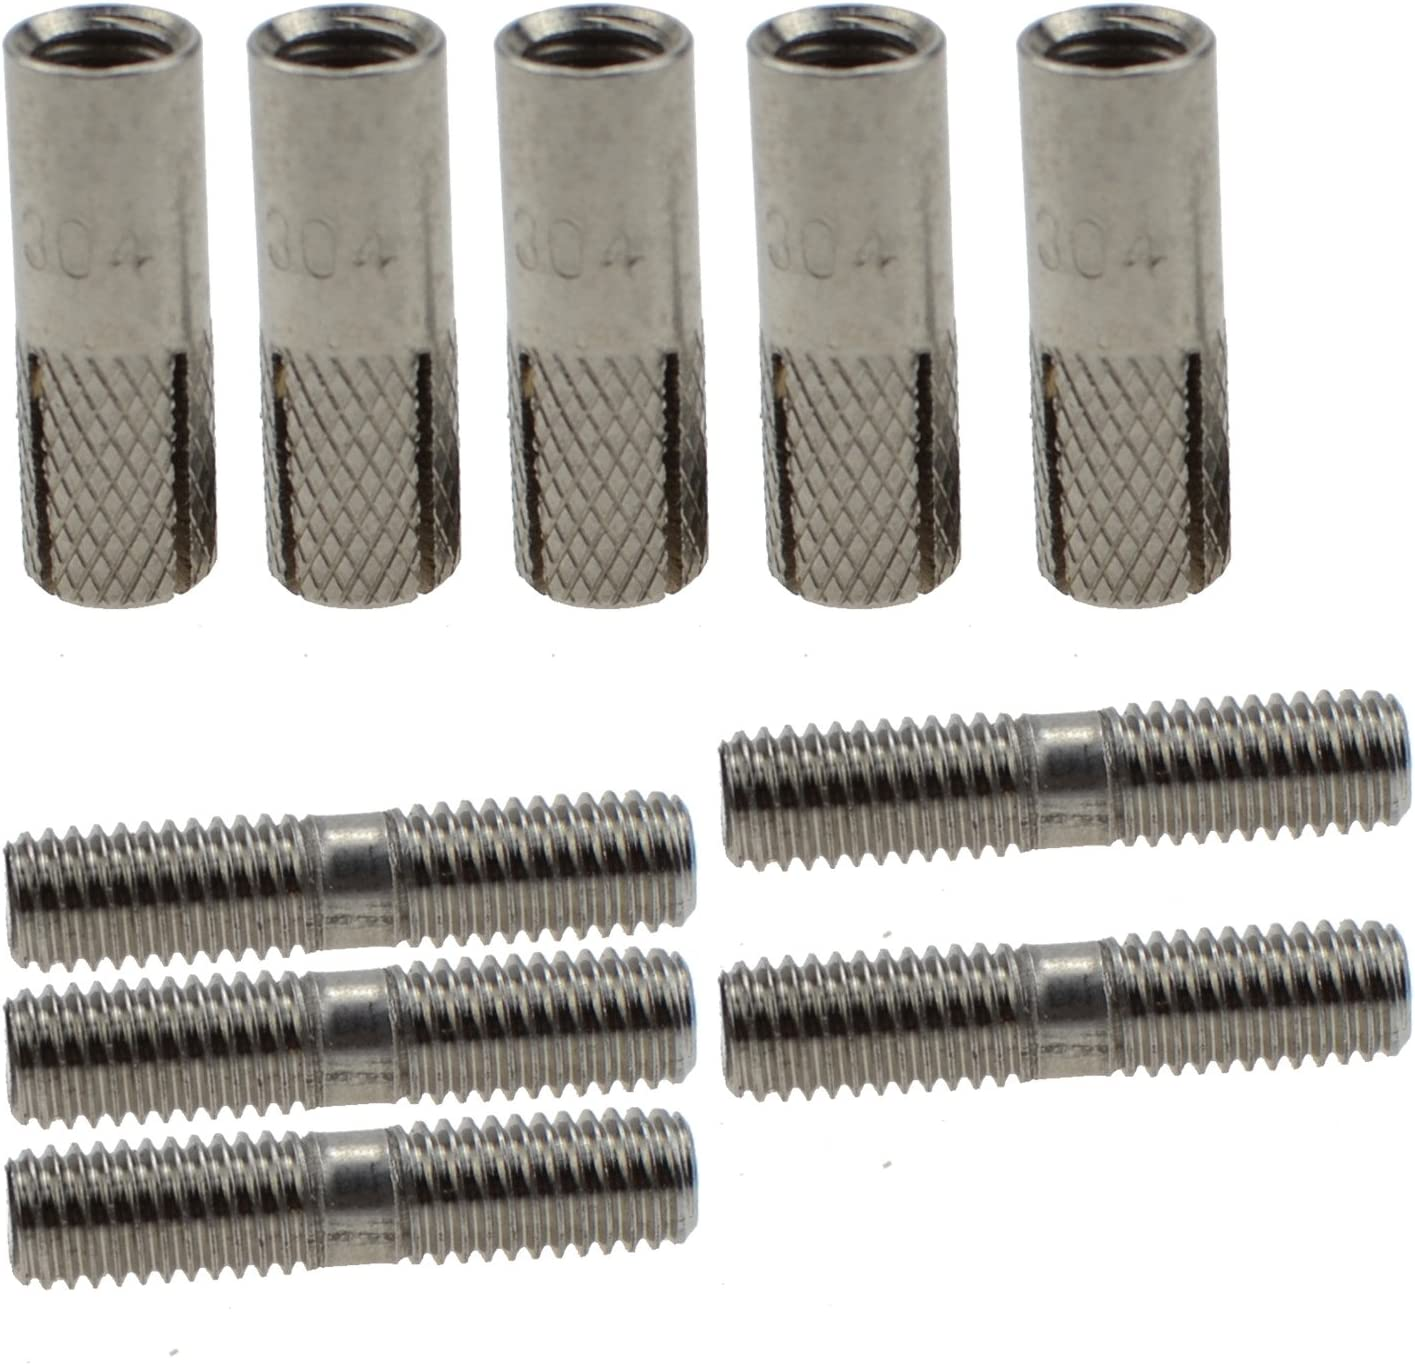 5pcs 304 Stainless Steel Invisible Wall Bracket Expansion Screw Partition Bracket Fitting Expansion Screw M6 80mm